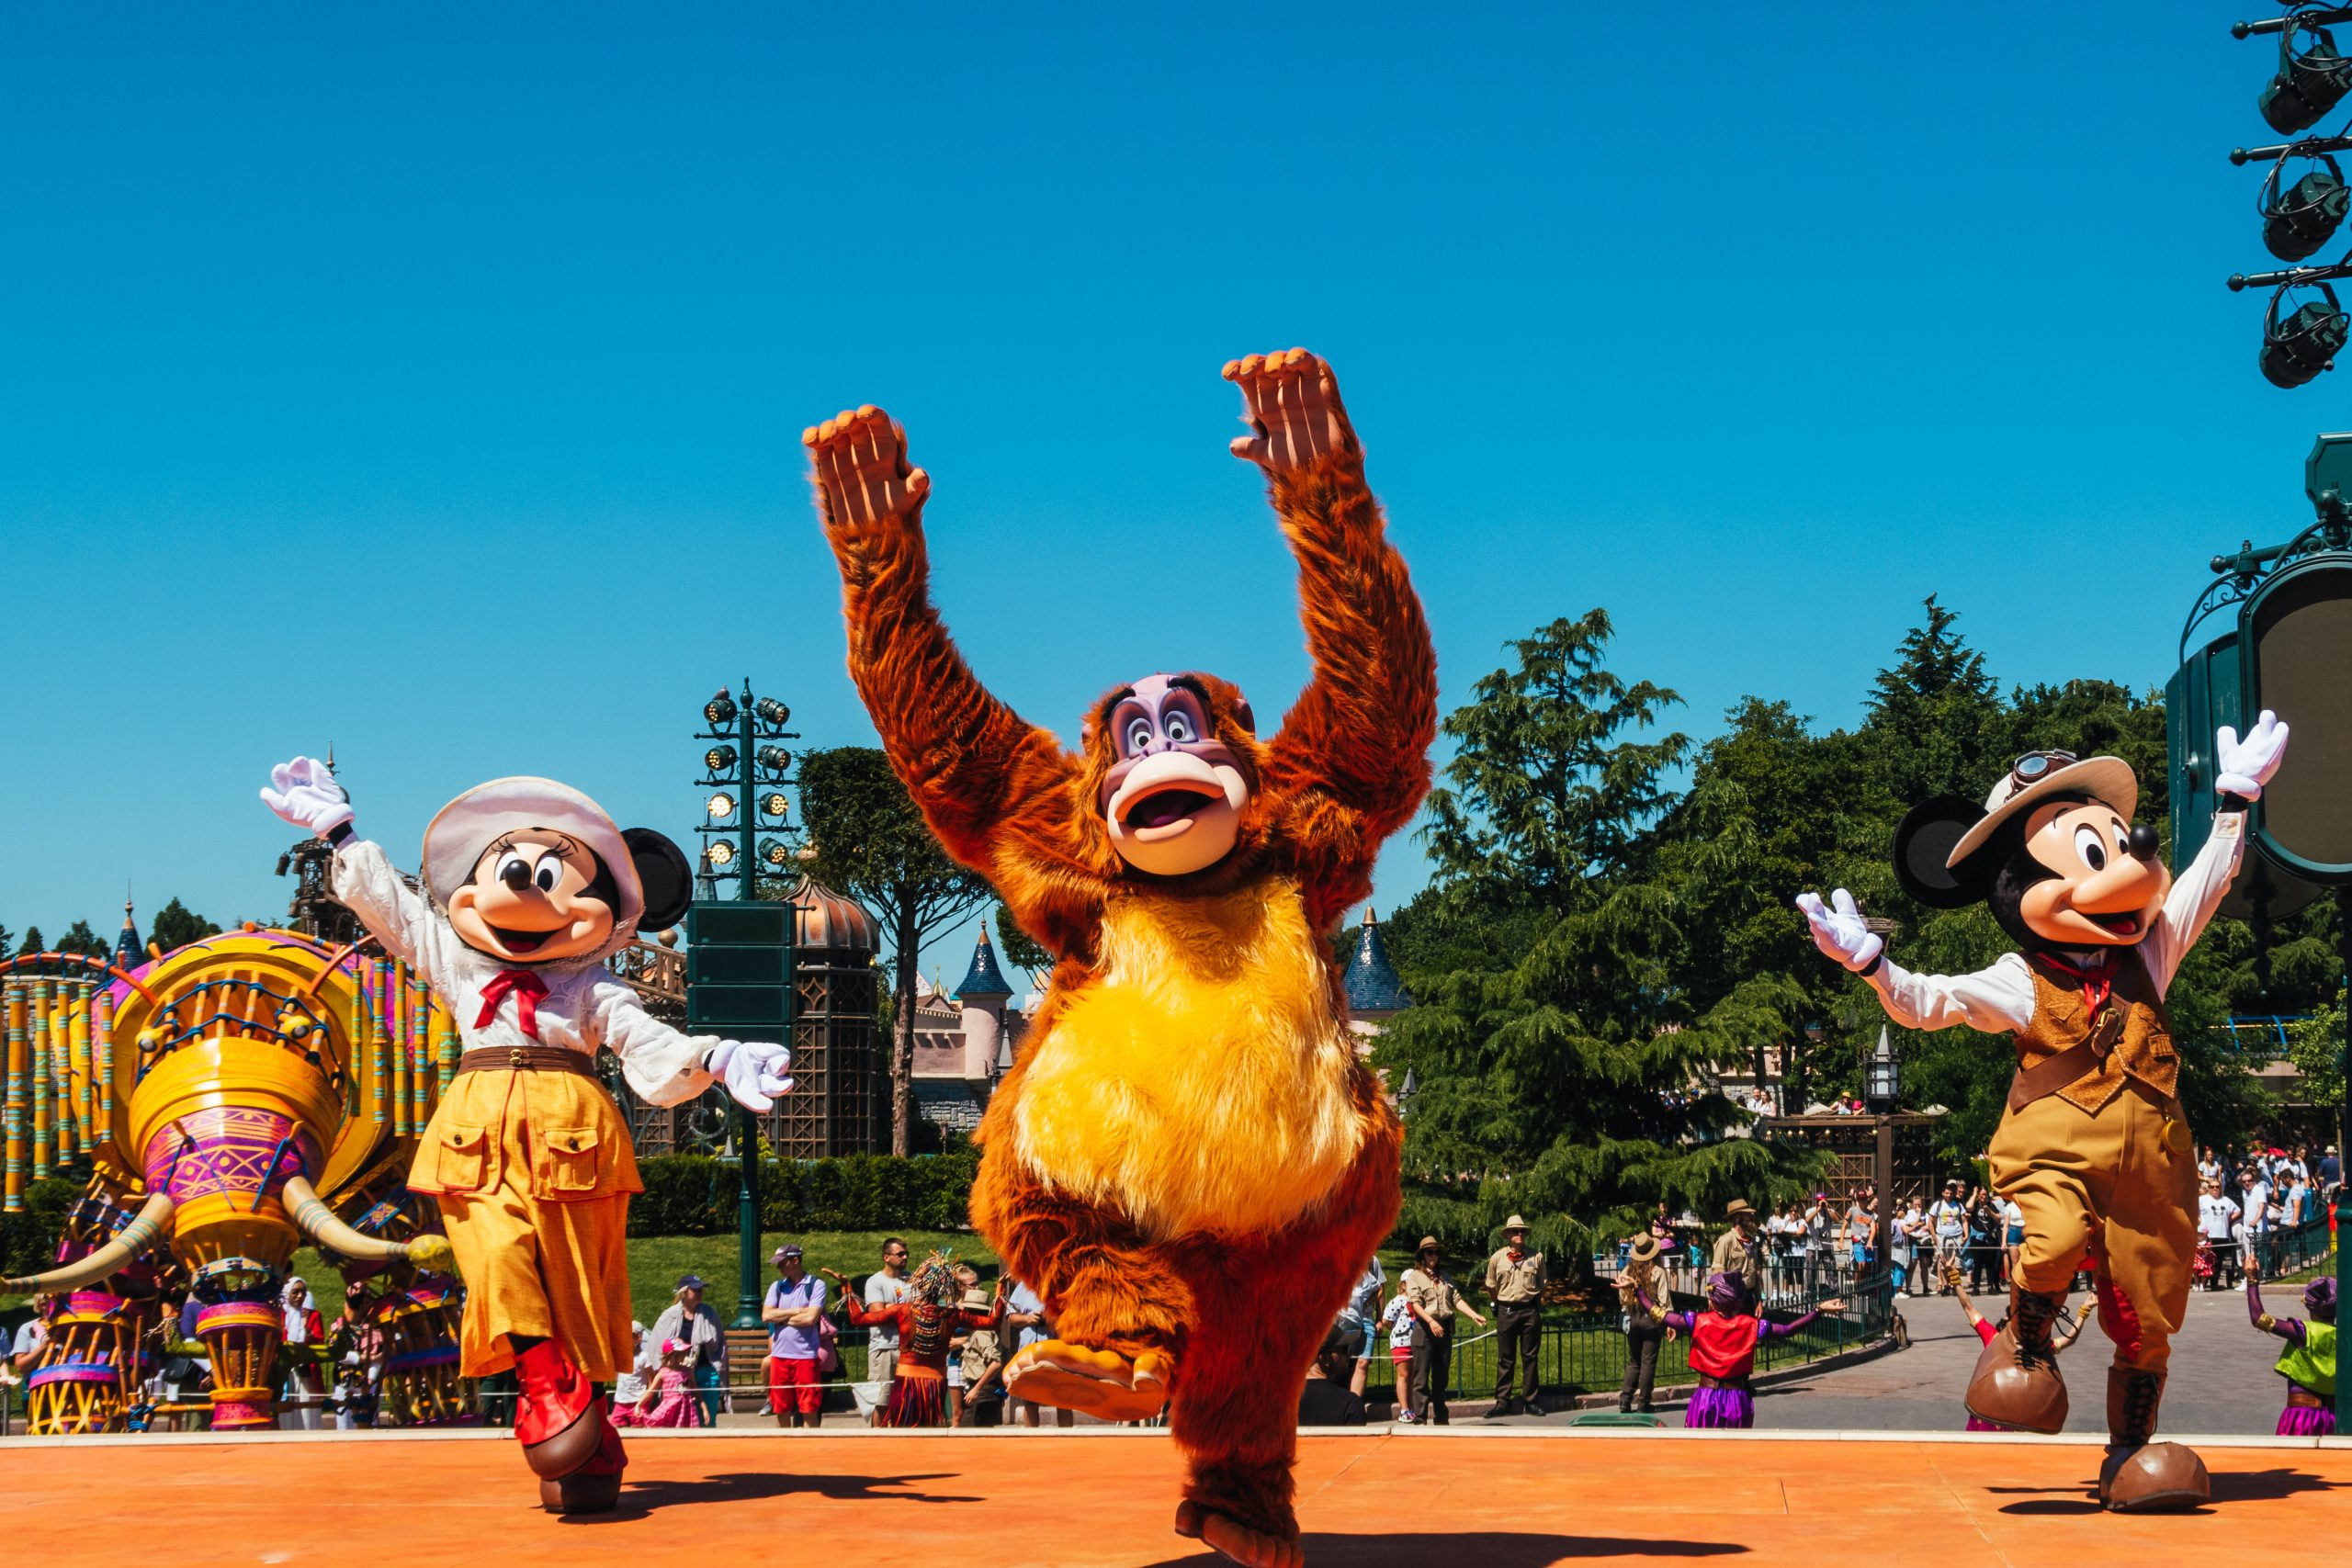 King Louie dancing during disney jungle show